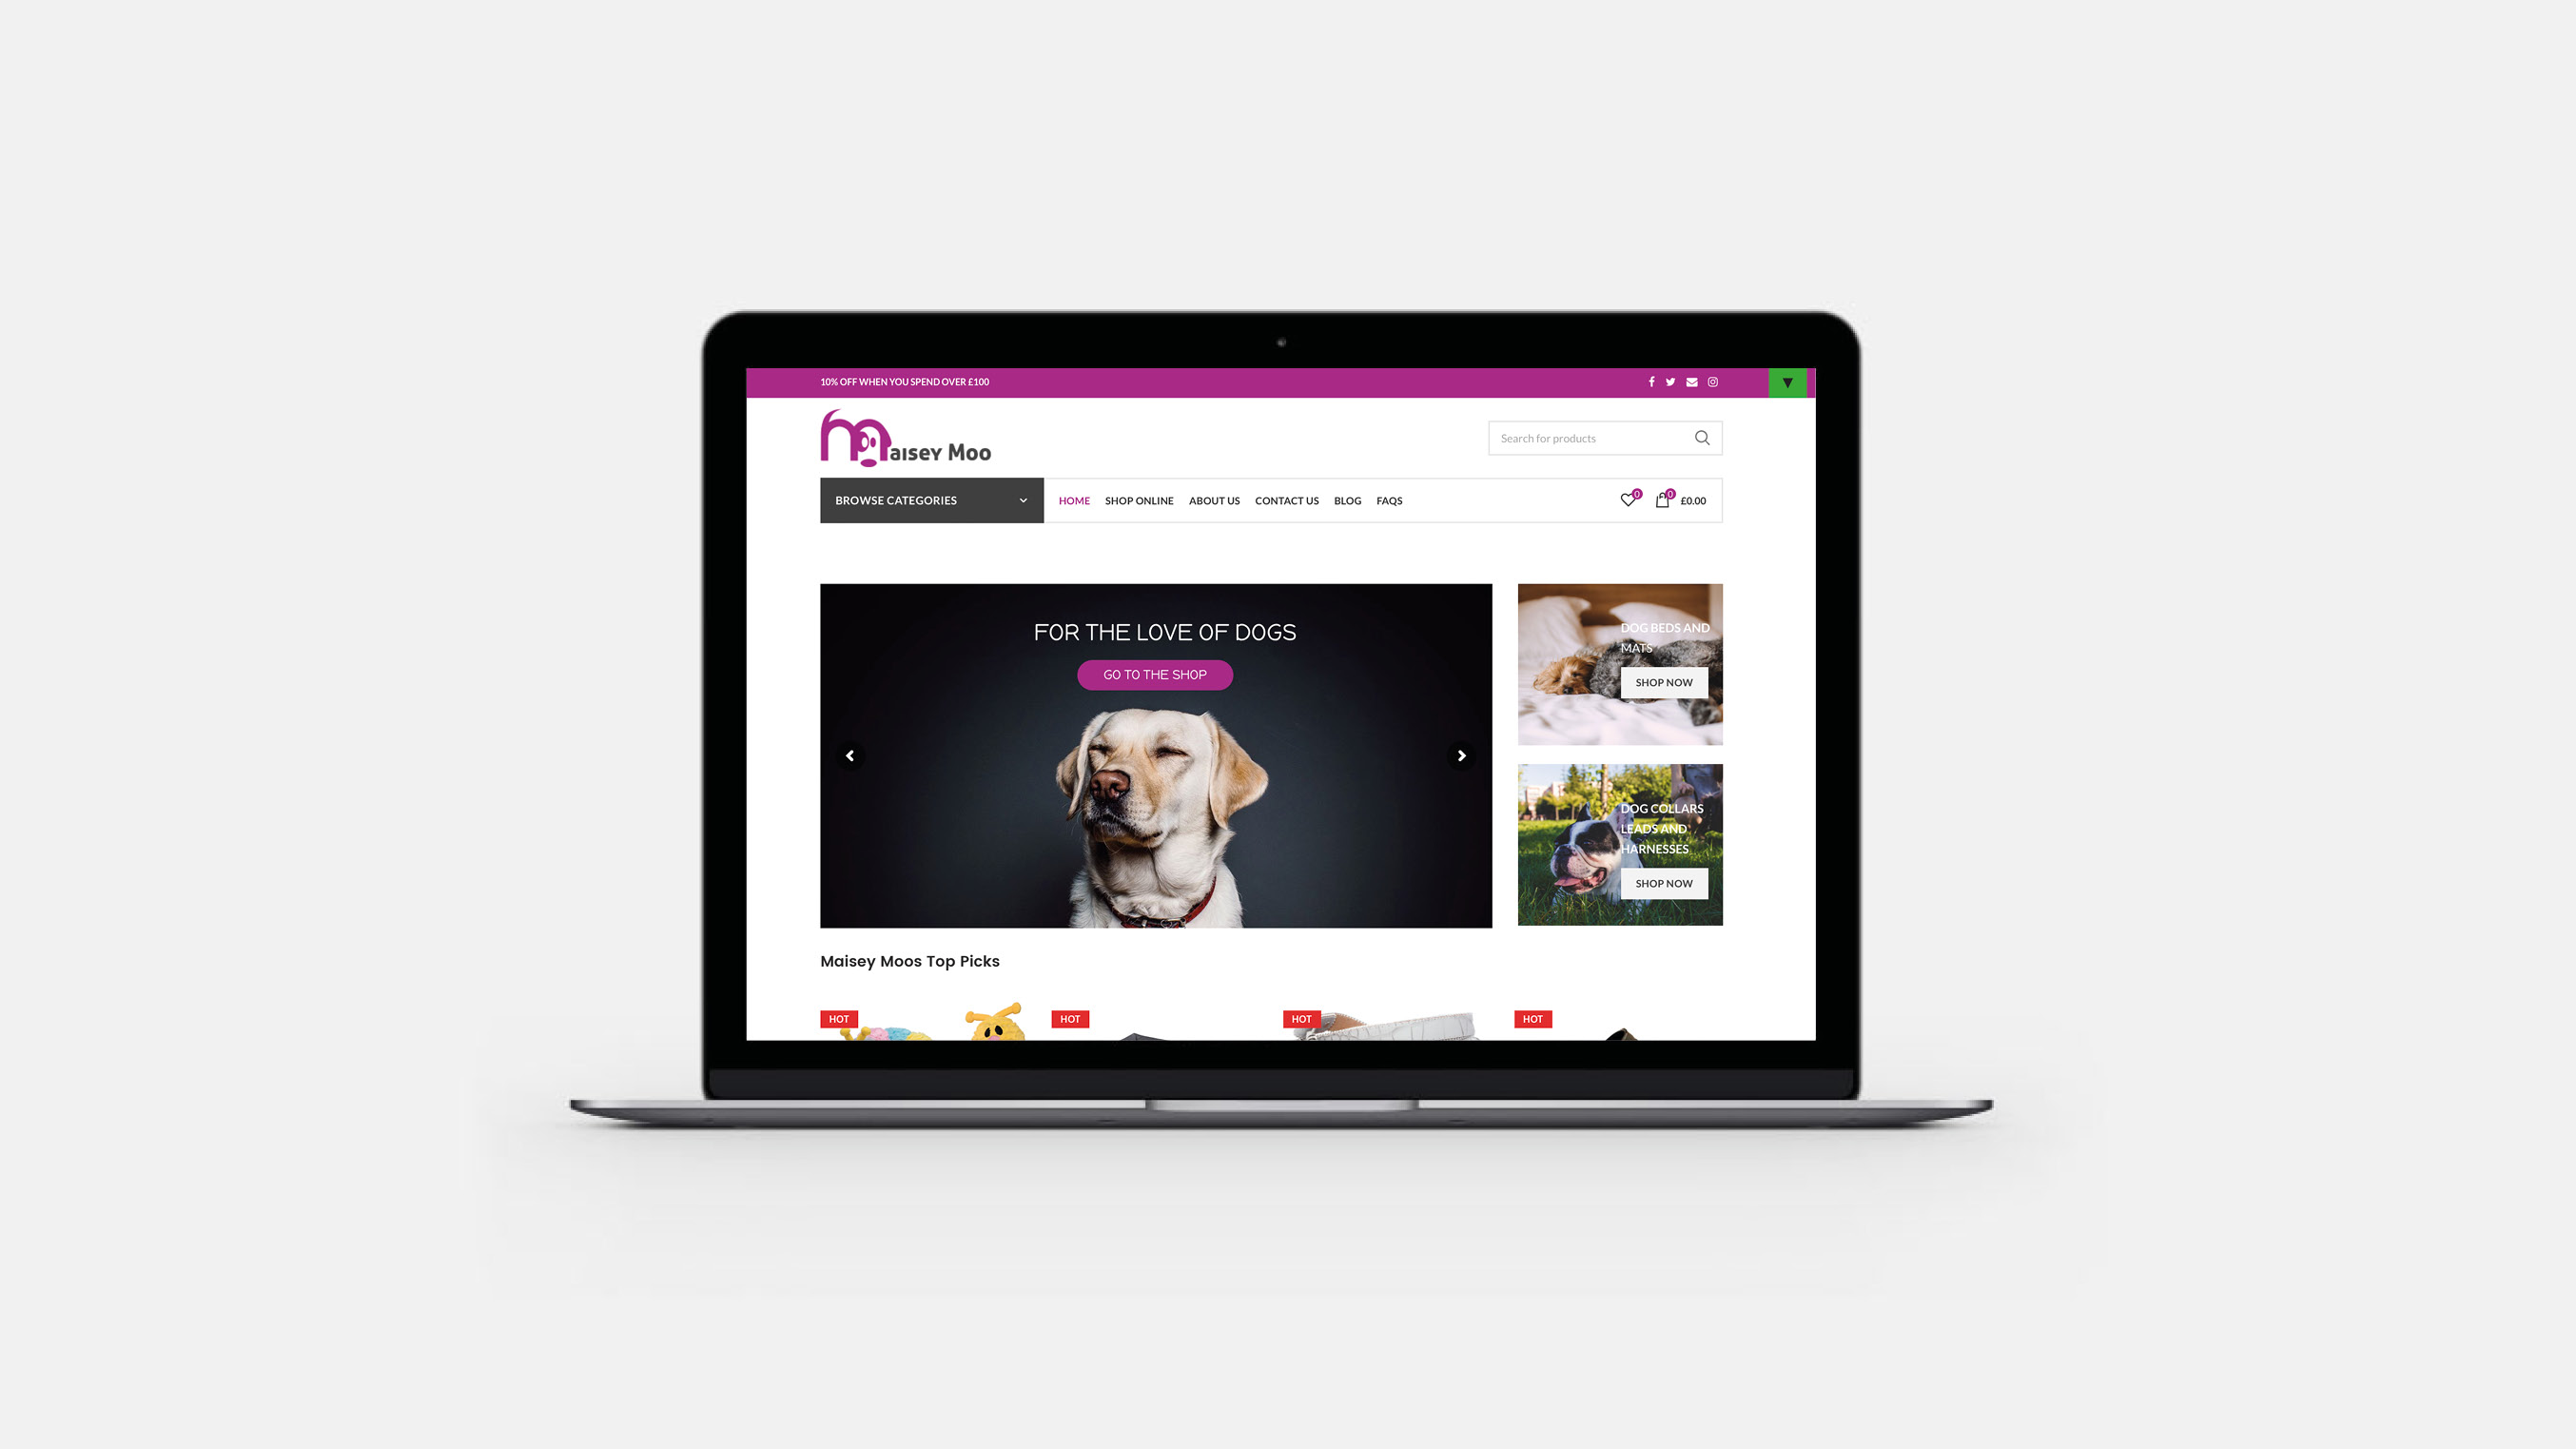 maisey moo e-commerce website